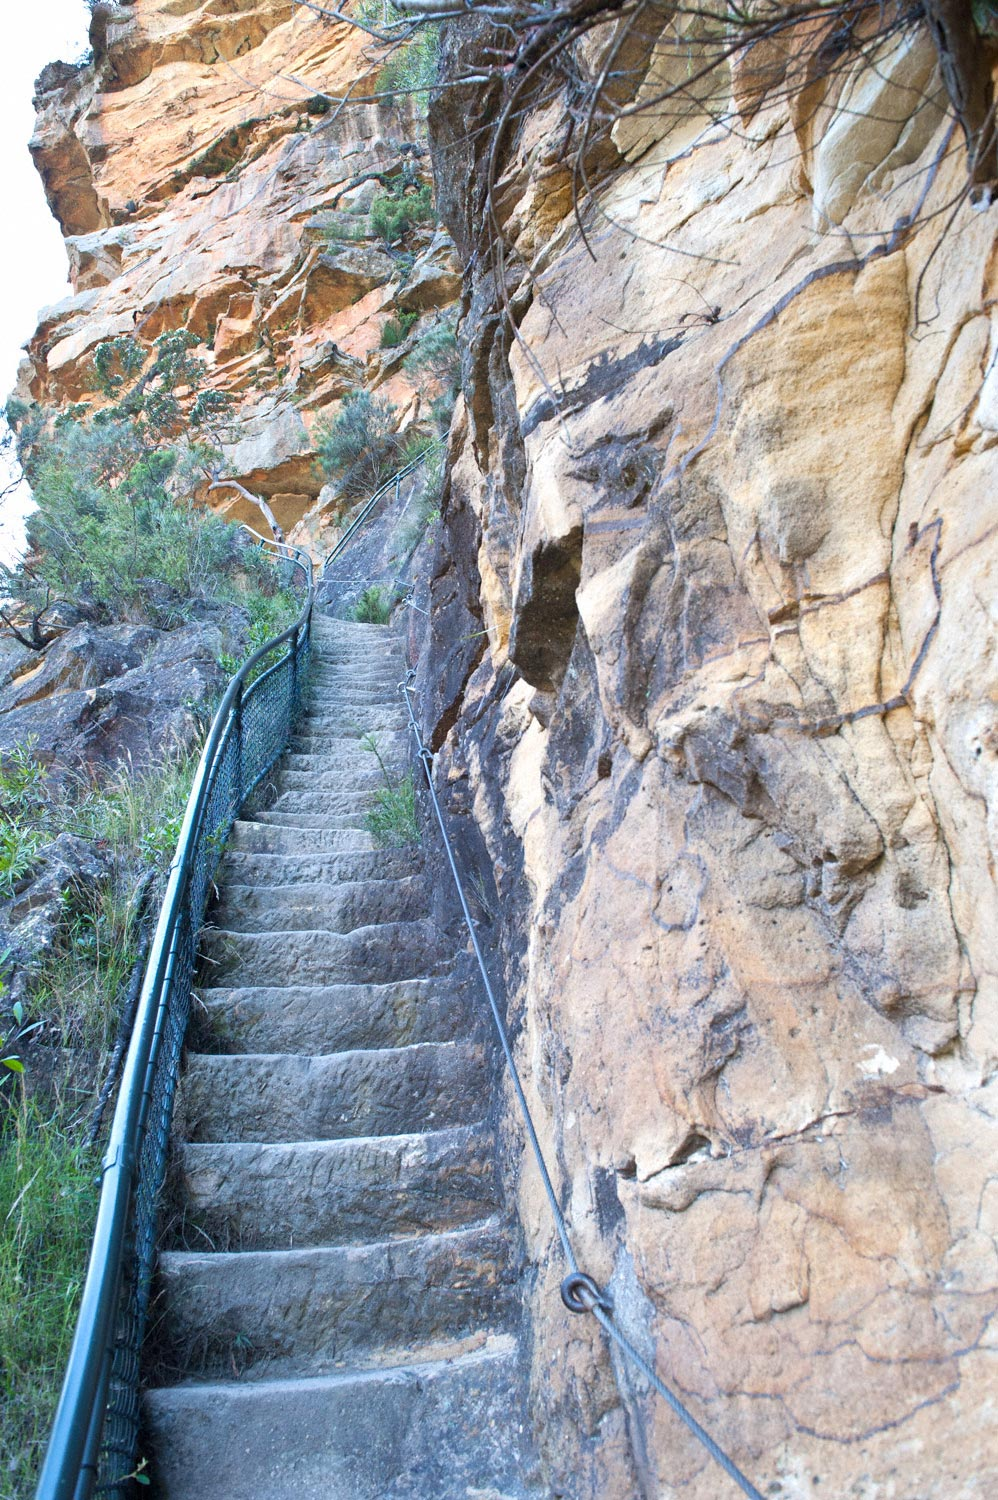 Warren-Hinder-LR-National-Pass-Sandstone-Stairs.jpg